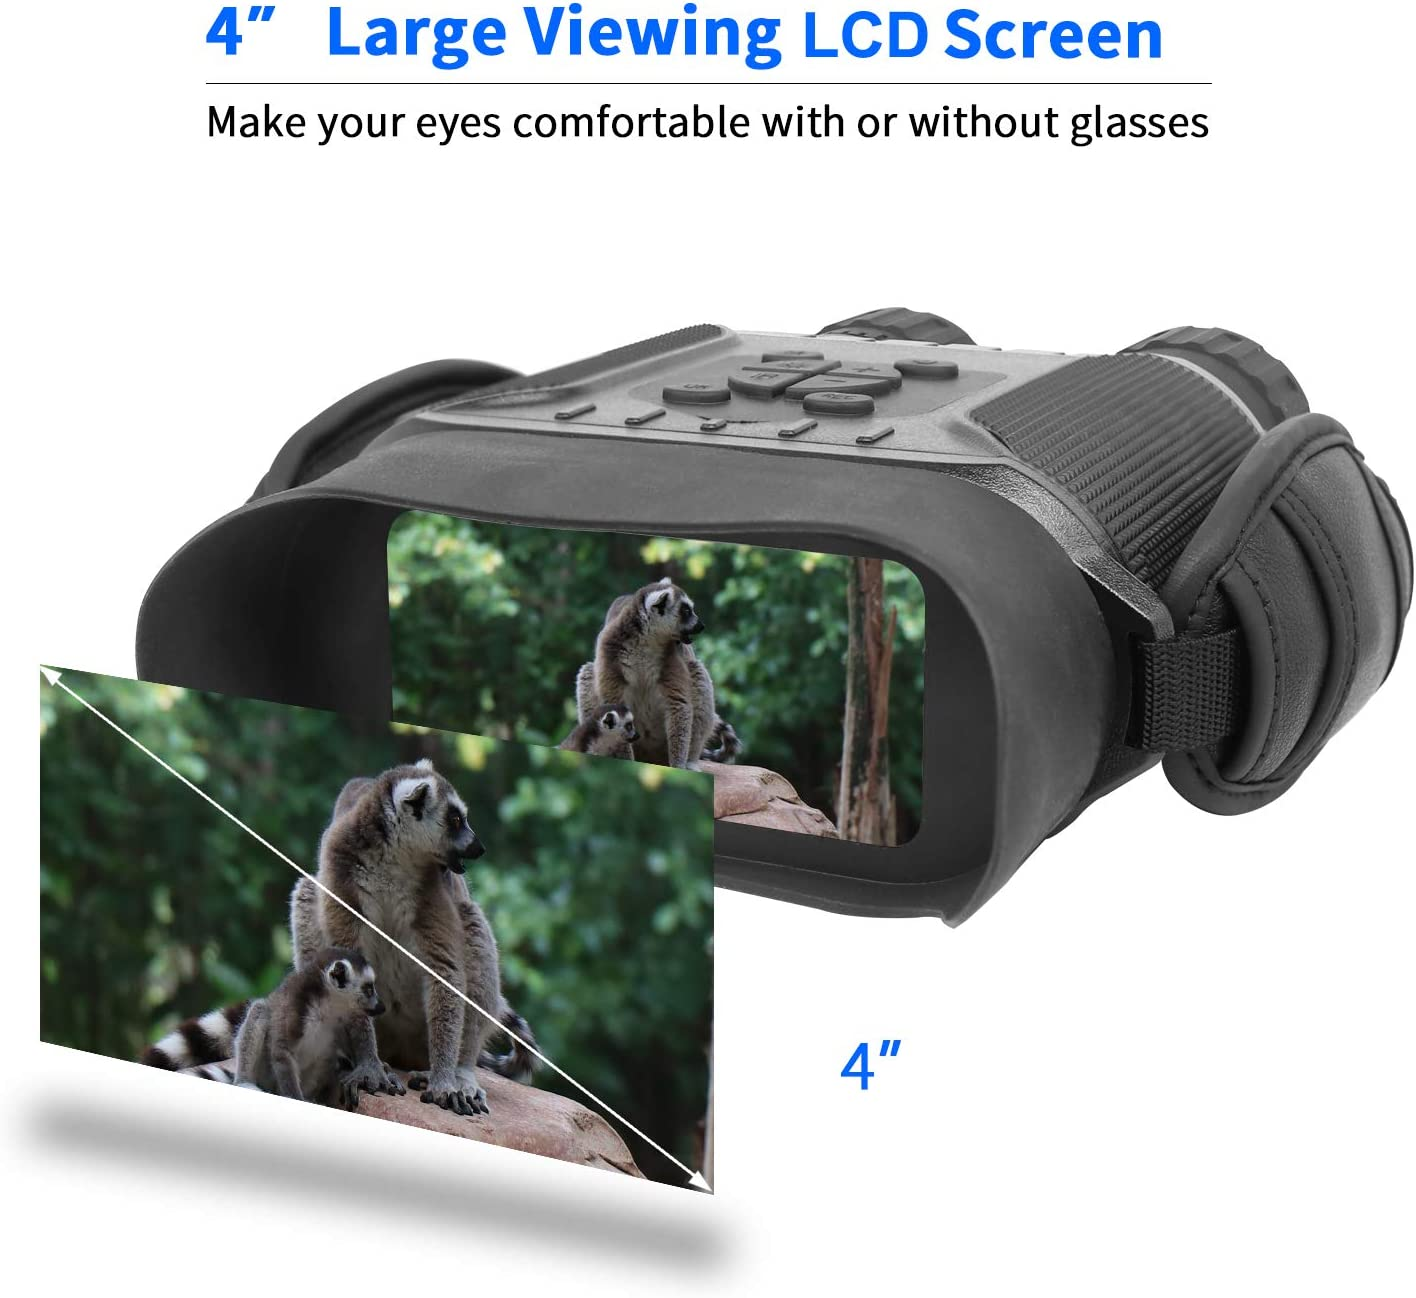 Bestguarder Night Vision Binoculars, 4.5-22.5 40 HD Digital Infrared Hunting Scope Record 5mp Photo 1280 720 Video with Sound by 4 Display Up to 400m 1300ft-Upgrade Version